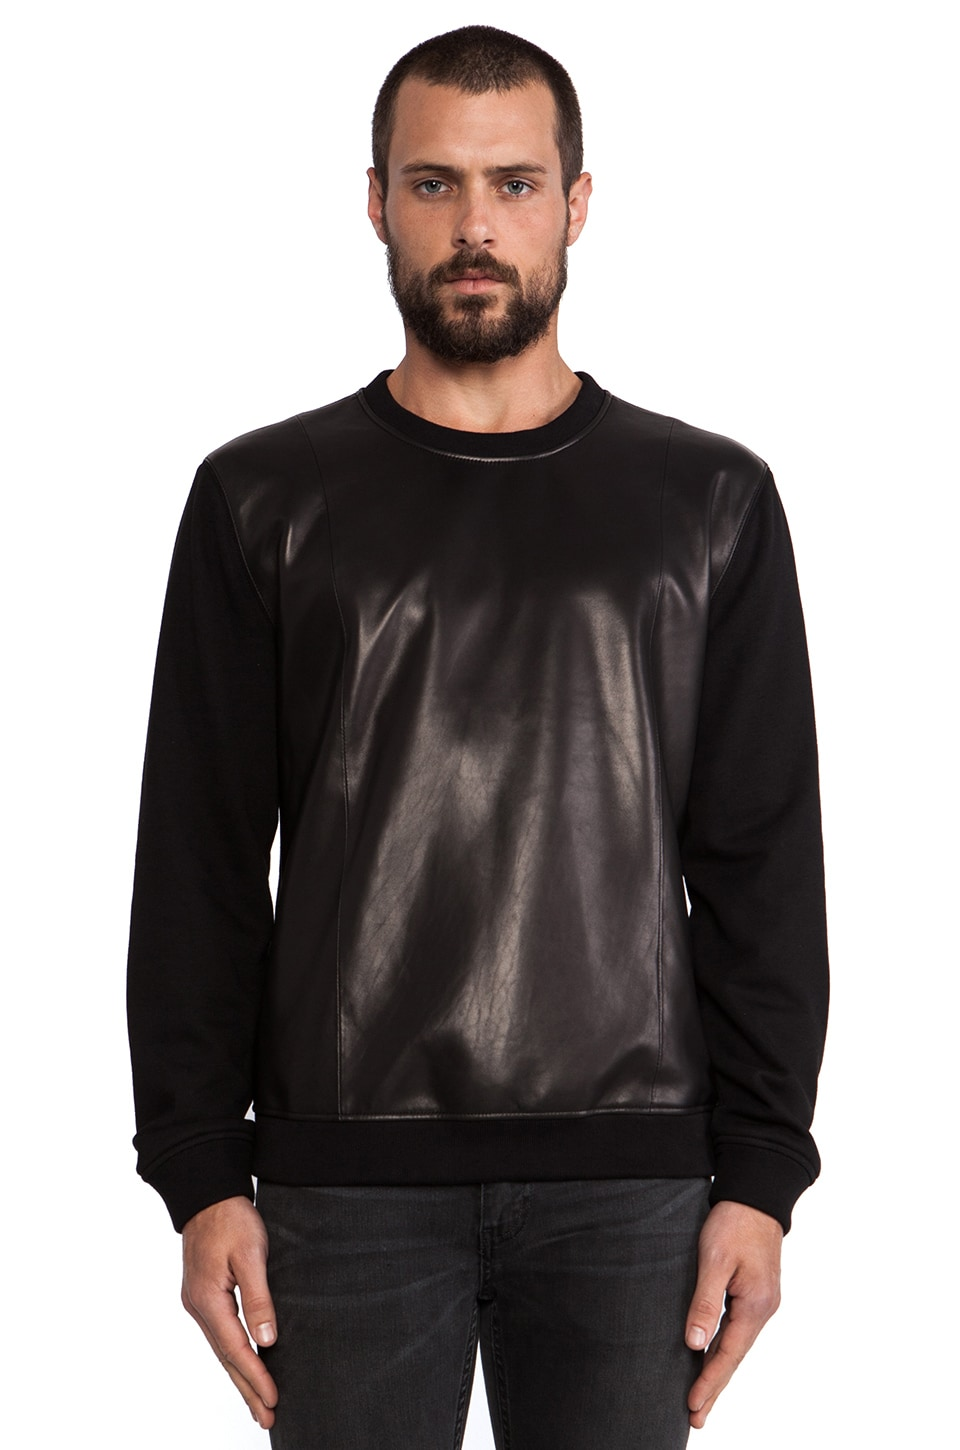 BLK DNM Leather Sweatshirt 20 in Black